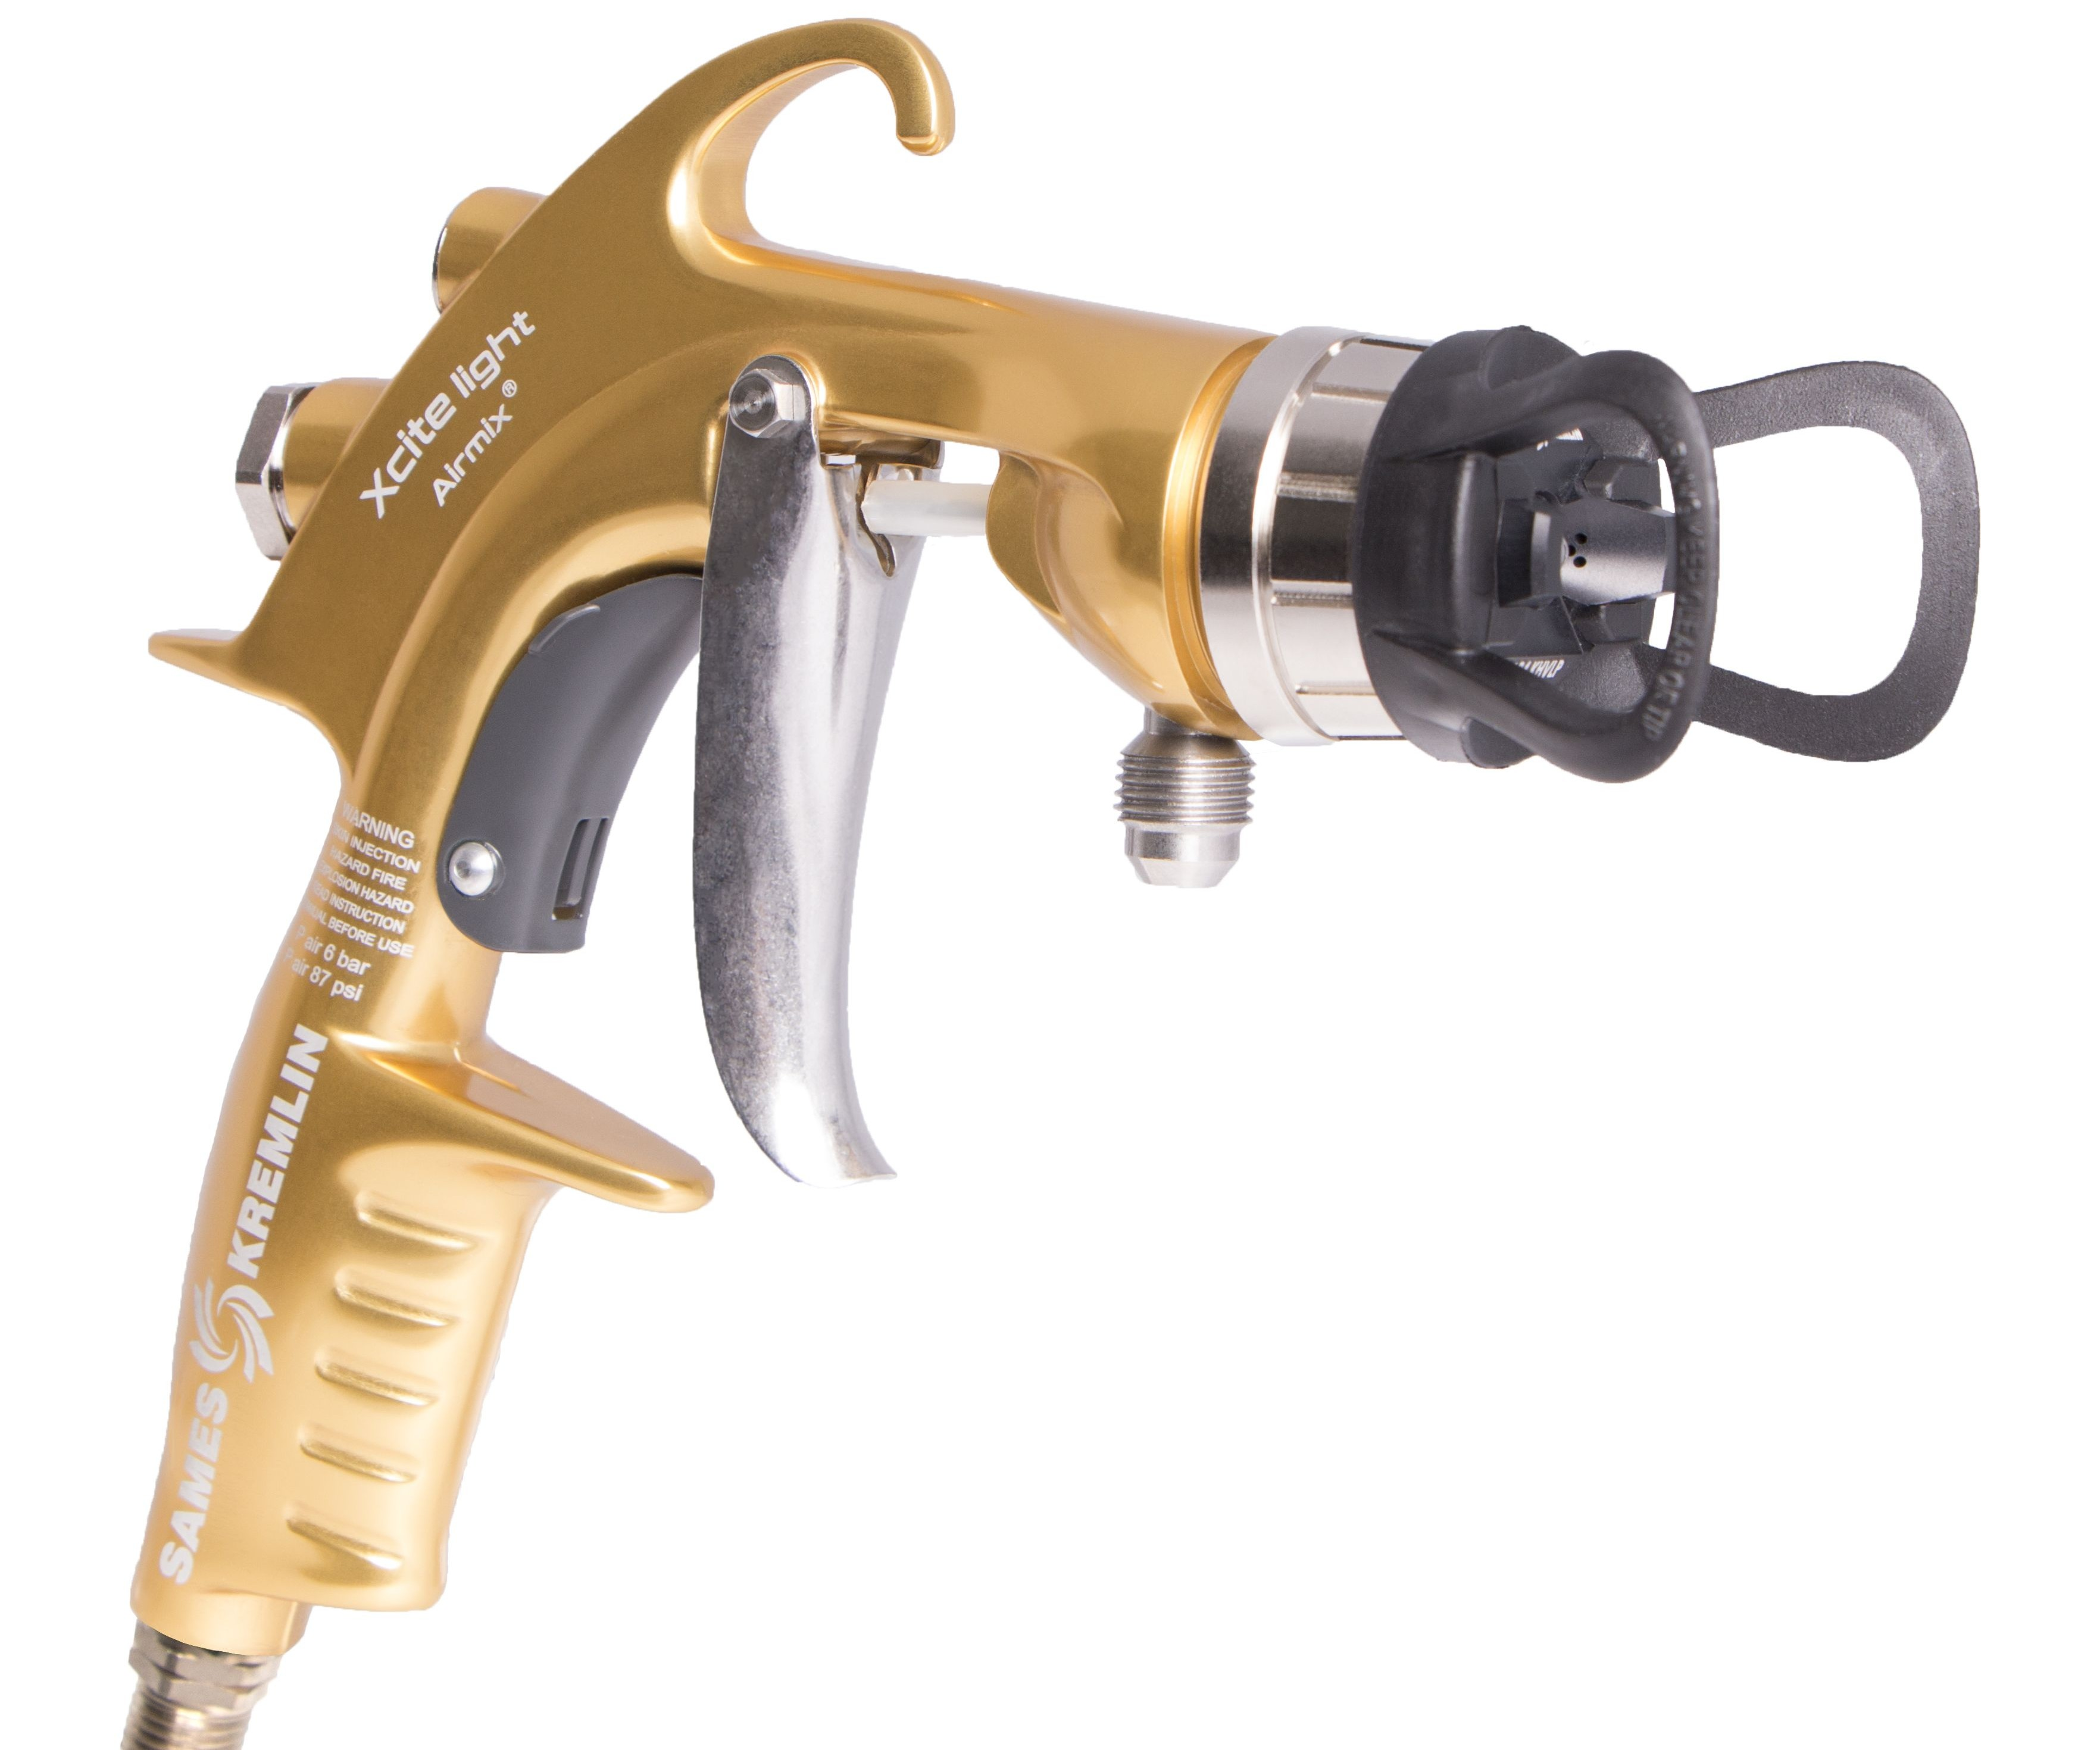 Sames Kremlin Xcite Light Airmix manual spray gun